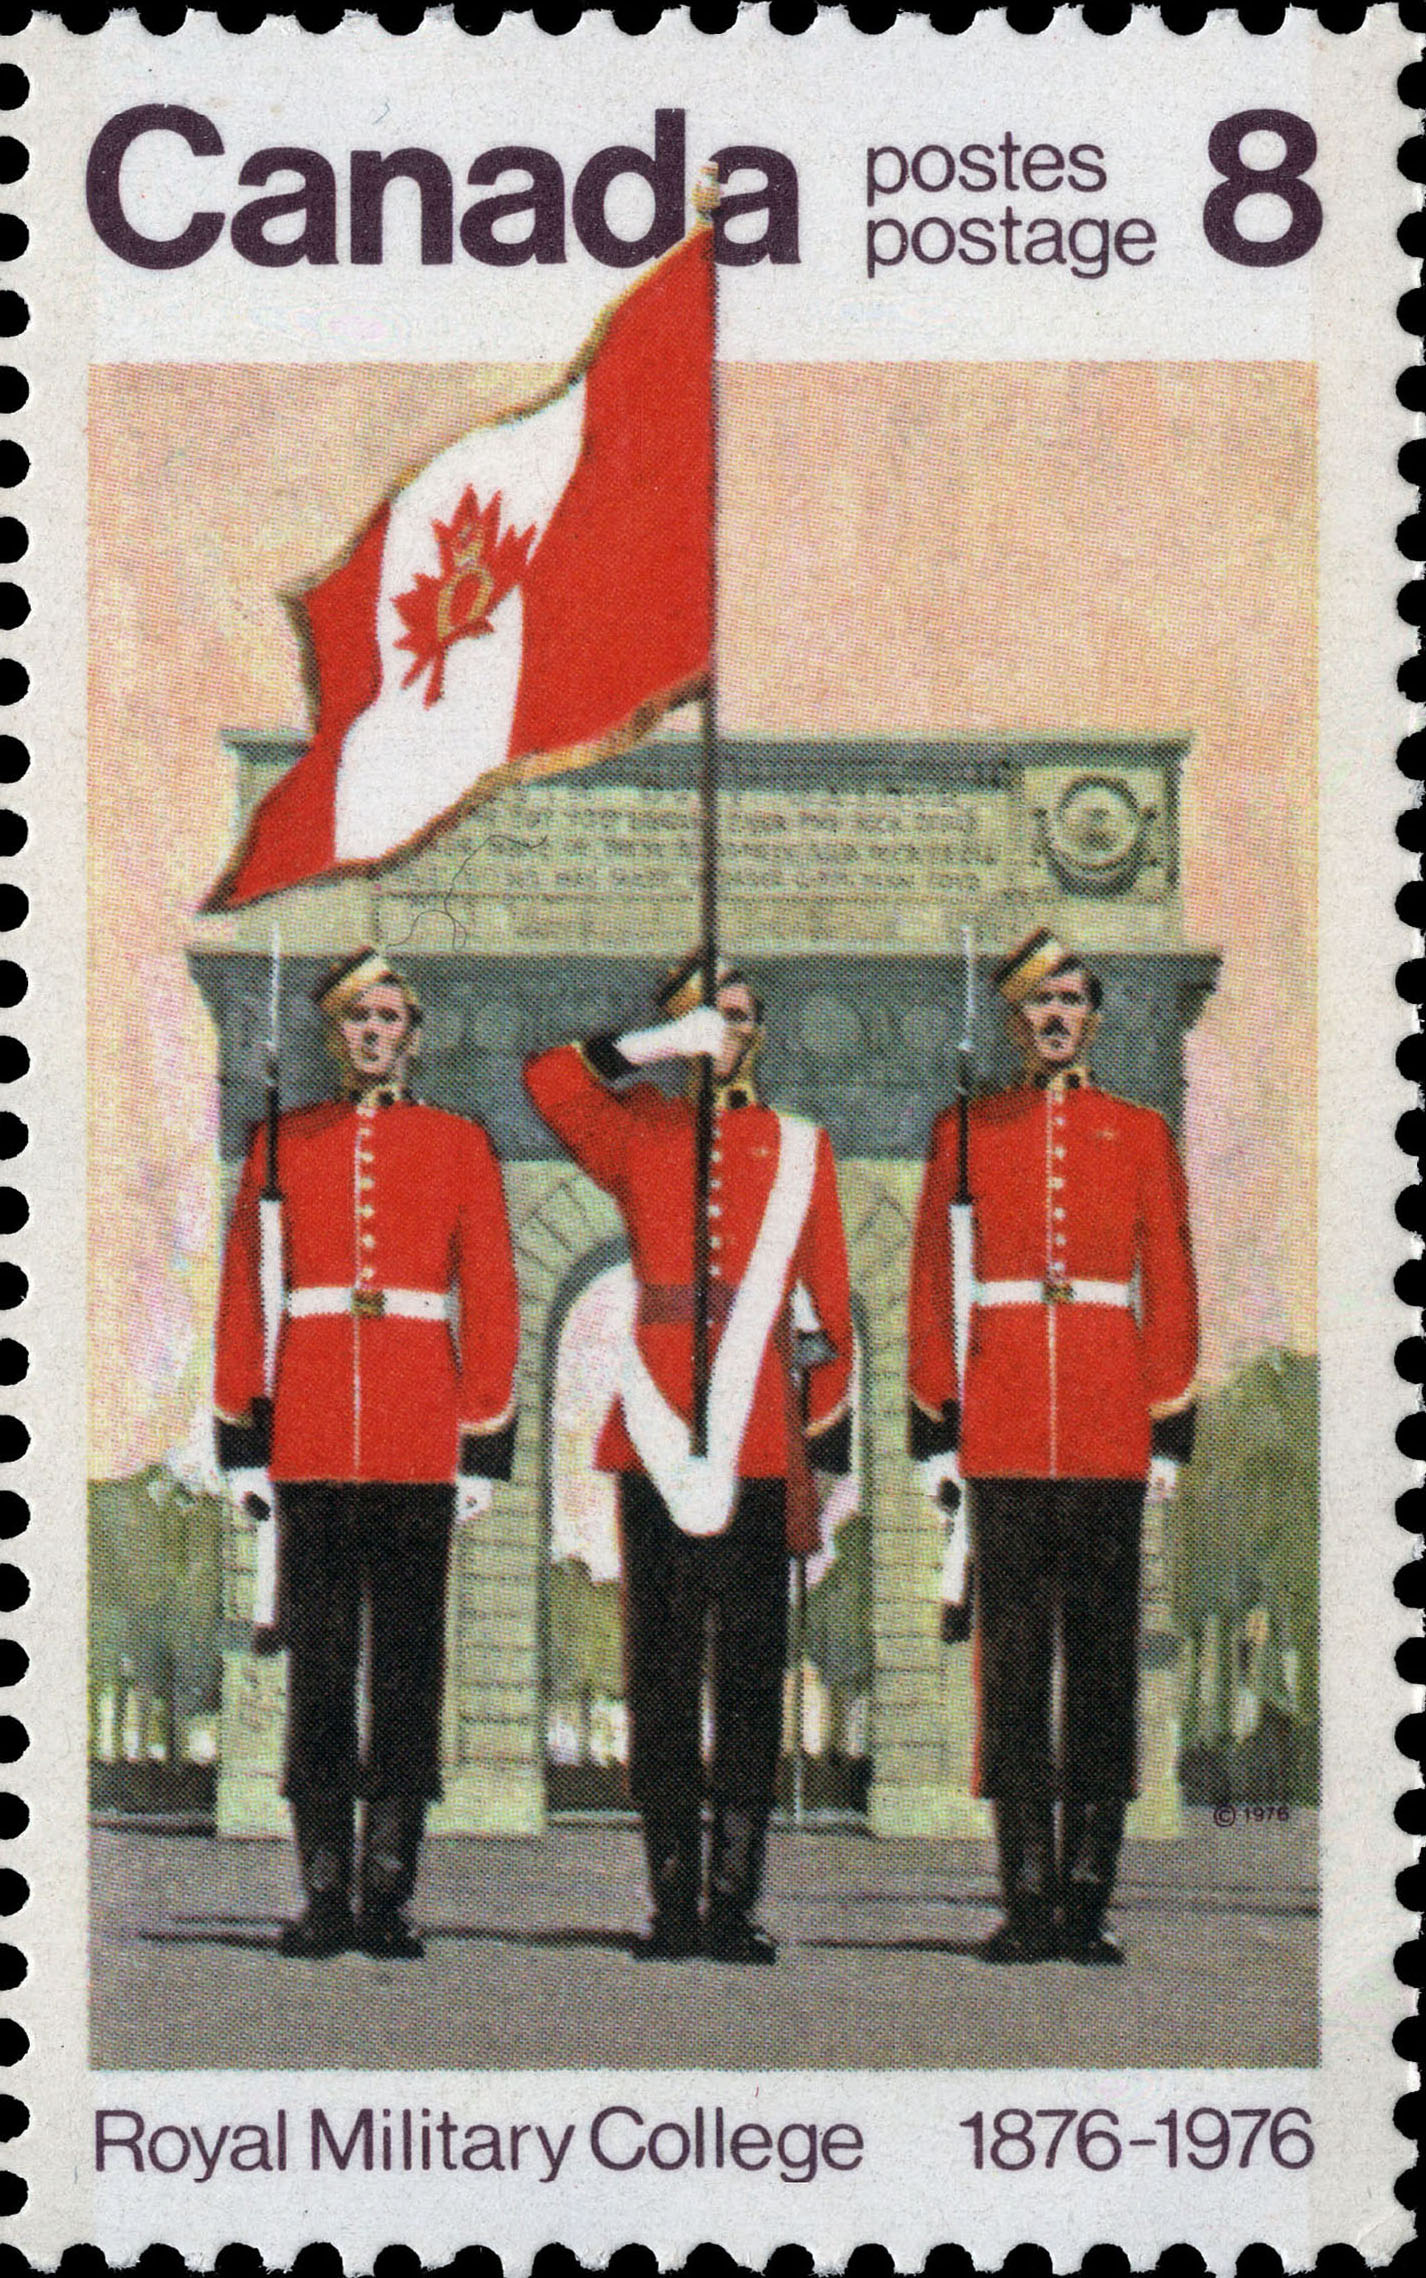 Colour Party Canada Postage Stamp